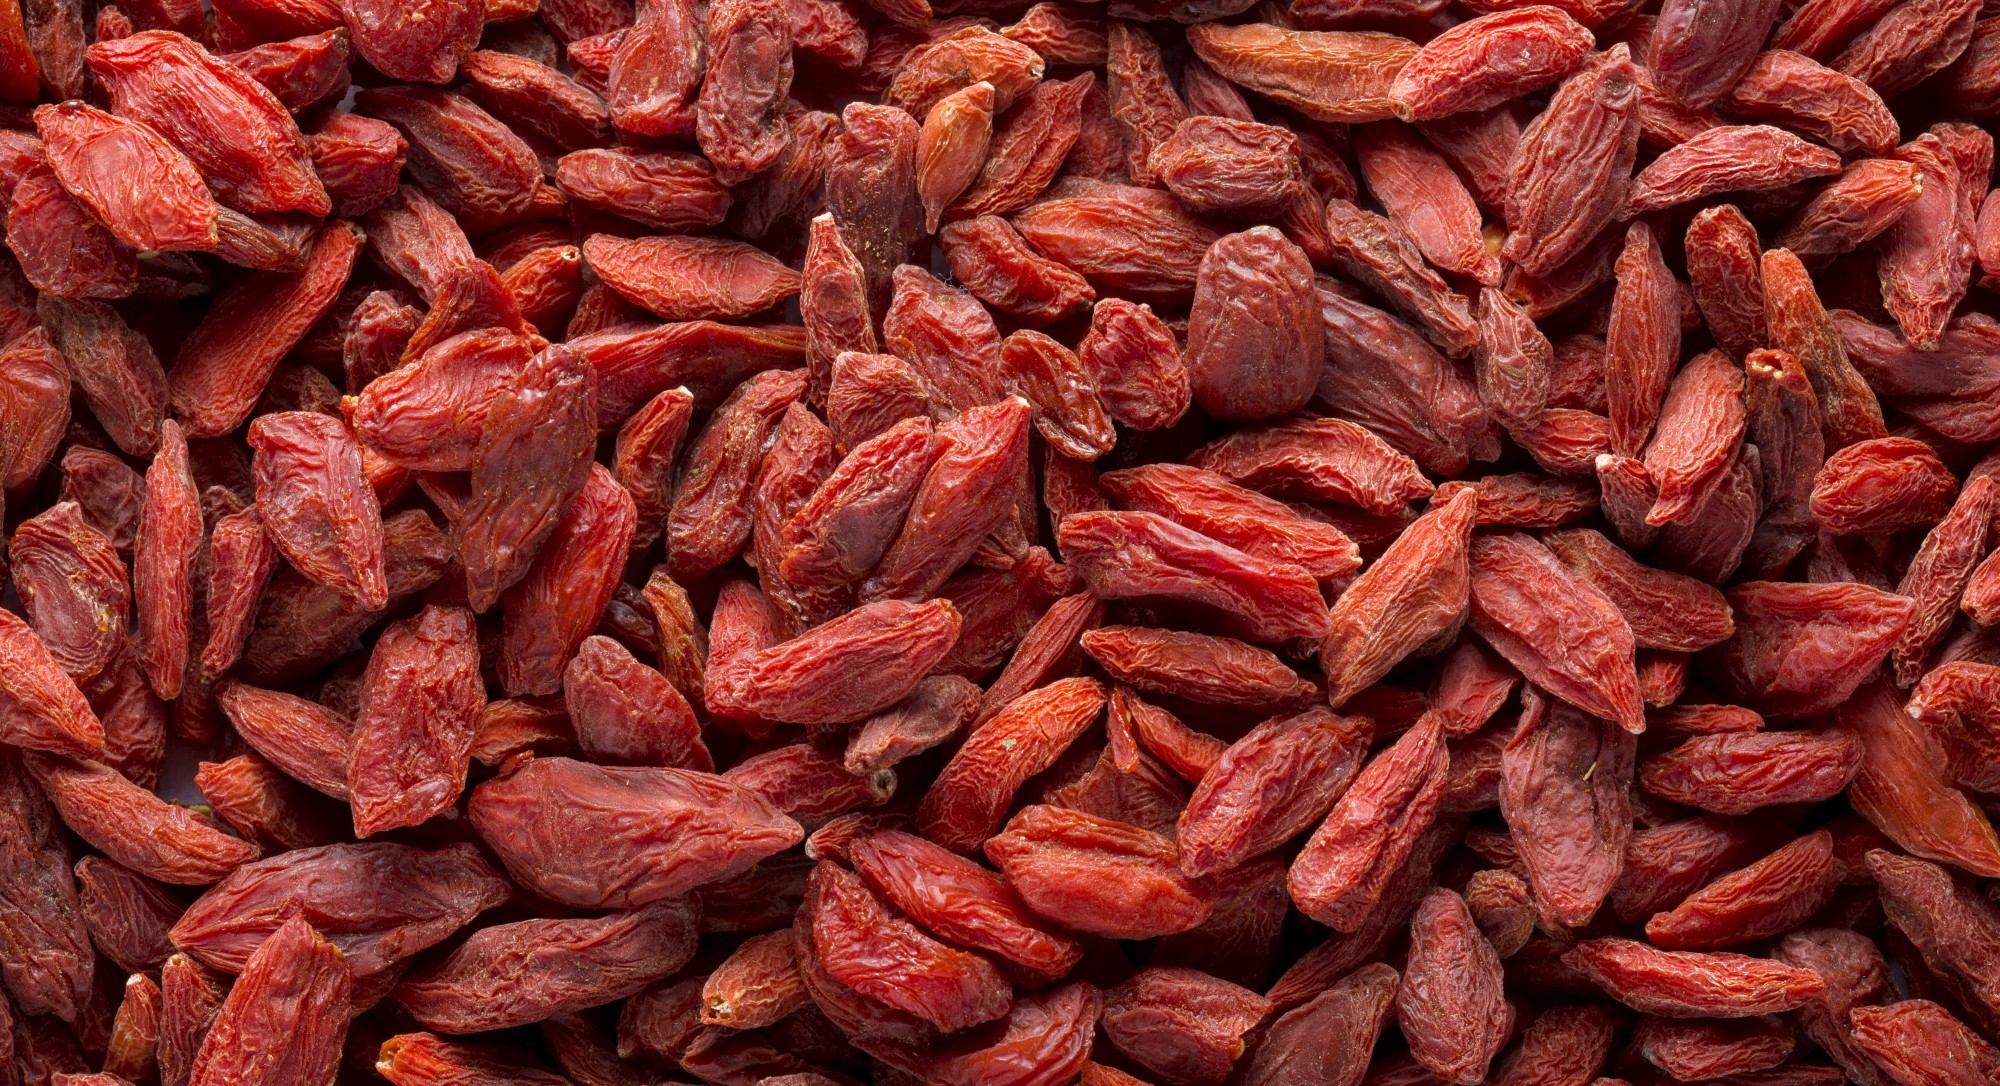 Ingredient of the Week: Believe It or Not, Tiny Goji Berries Are A Complete Protein